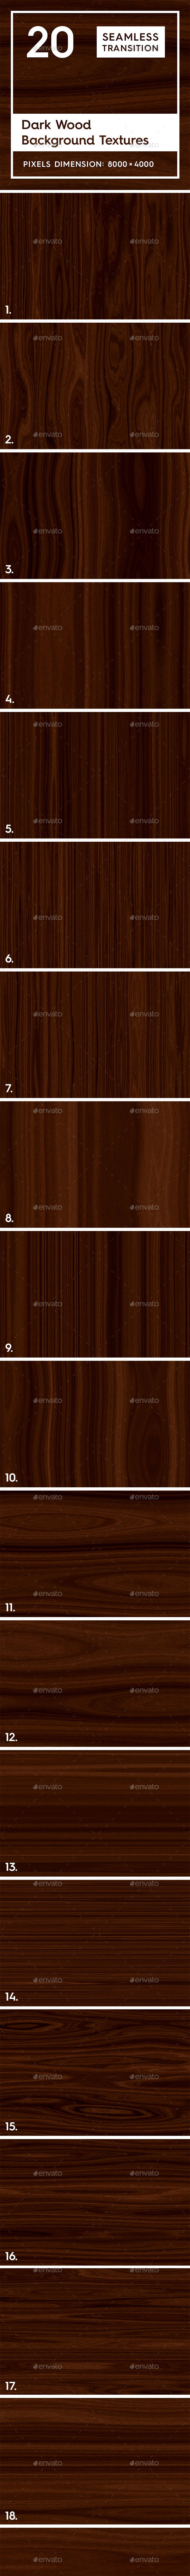 20 Dark Wood Background Textures - 3DOcean Item for Sale